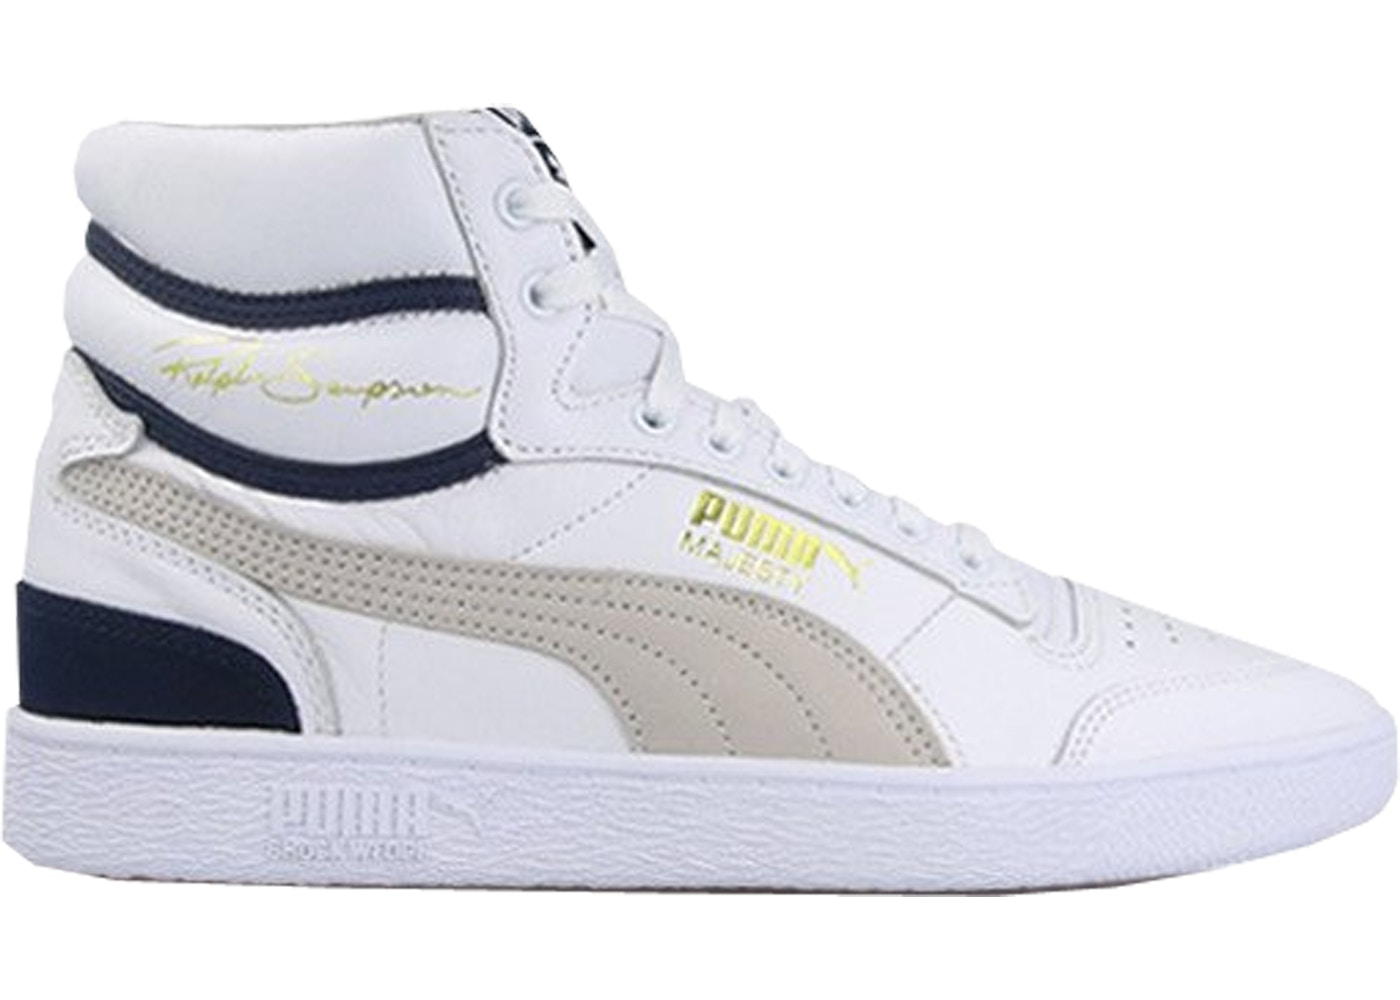 meet 78414 4c9e7 Puma Footwear - Buy Deadstock Sneakers